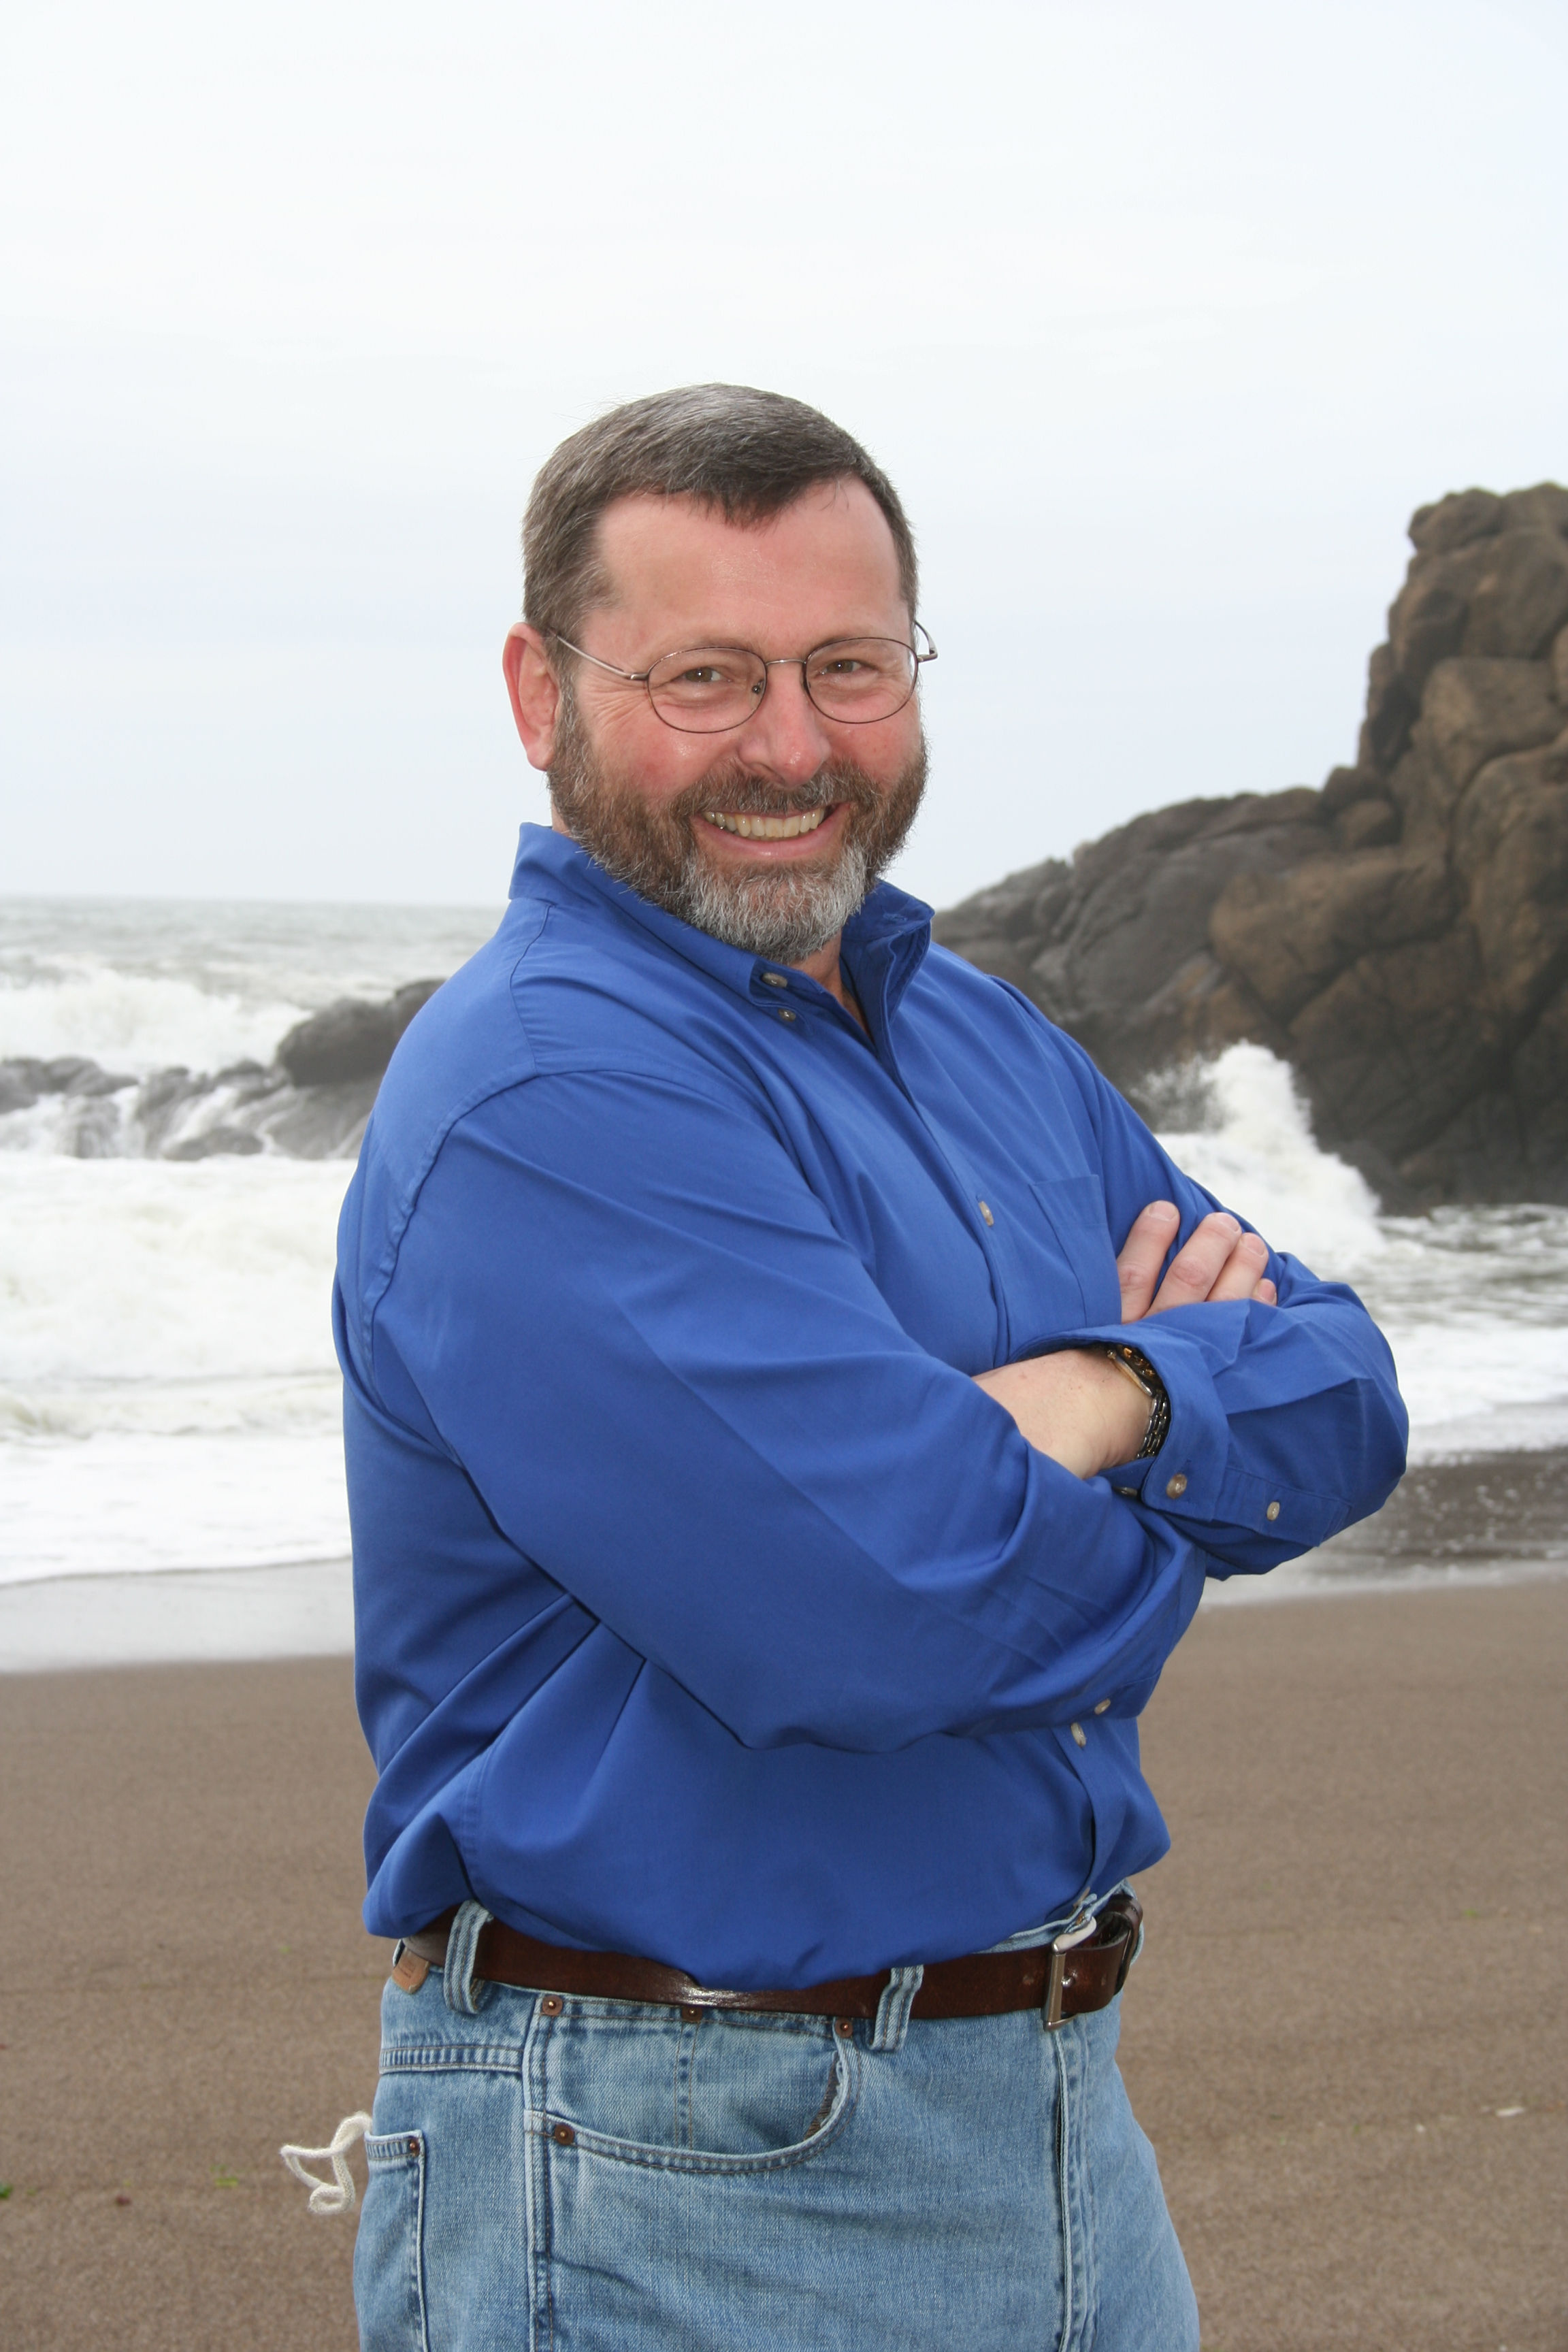 Lincoln City OR dentist, Lincoln City OR emergency dentist, Emergency dentist Lincoln City OR, Paul Jensen DMD